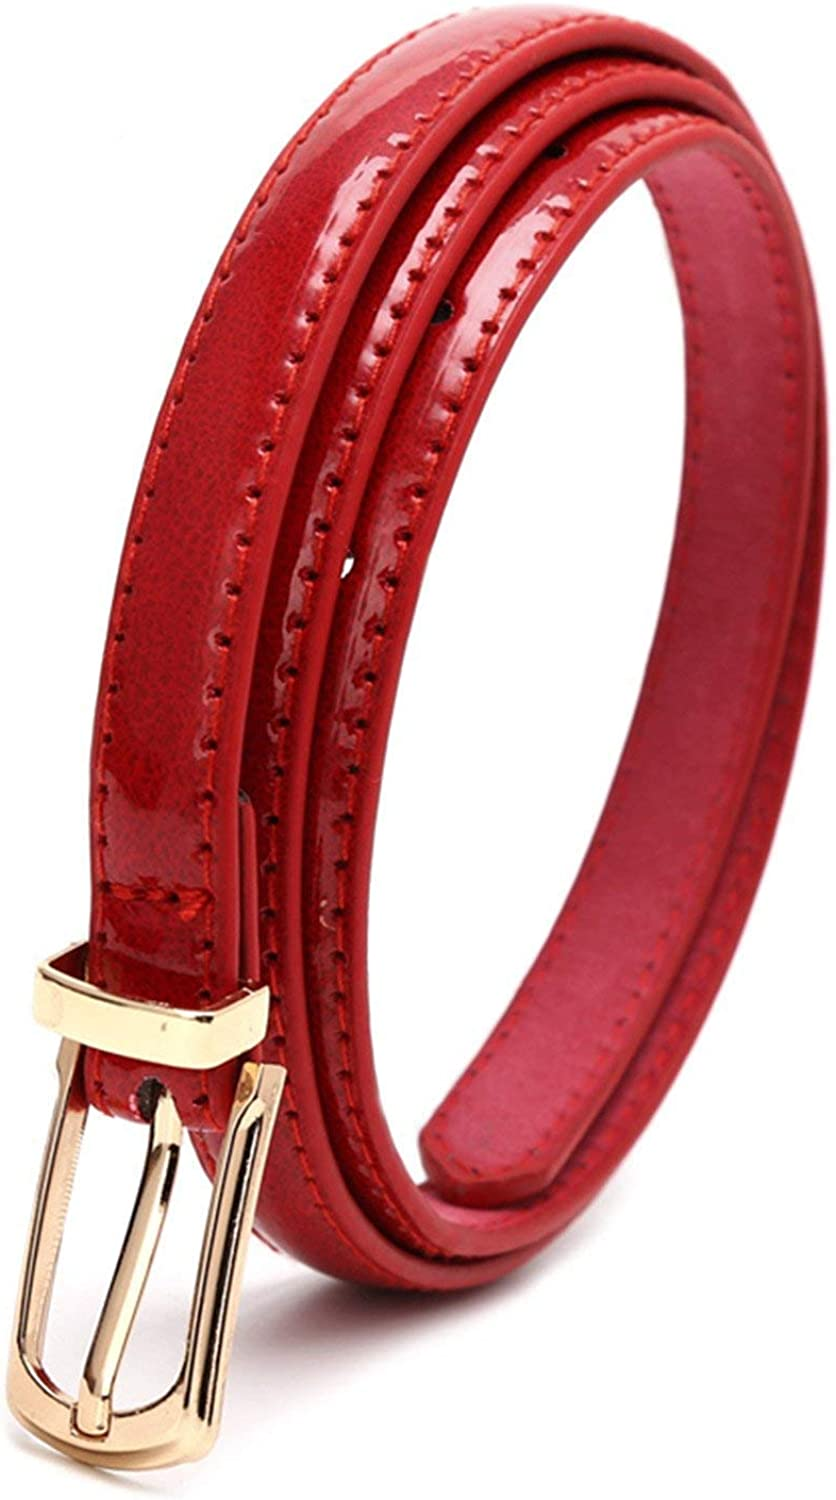 KEBINAI Metal Buckle Thin Belt For Women Leather Belt Female Straps Waistband For Apparel Accessories